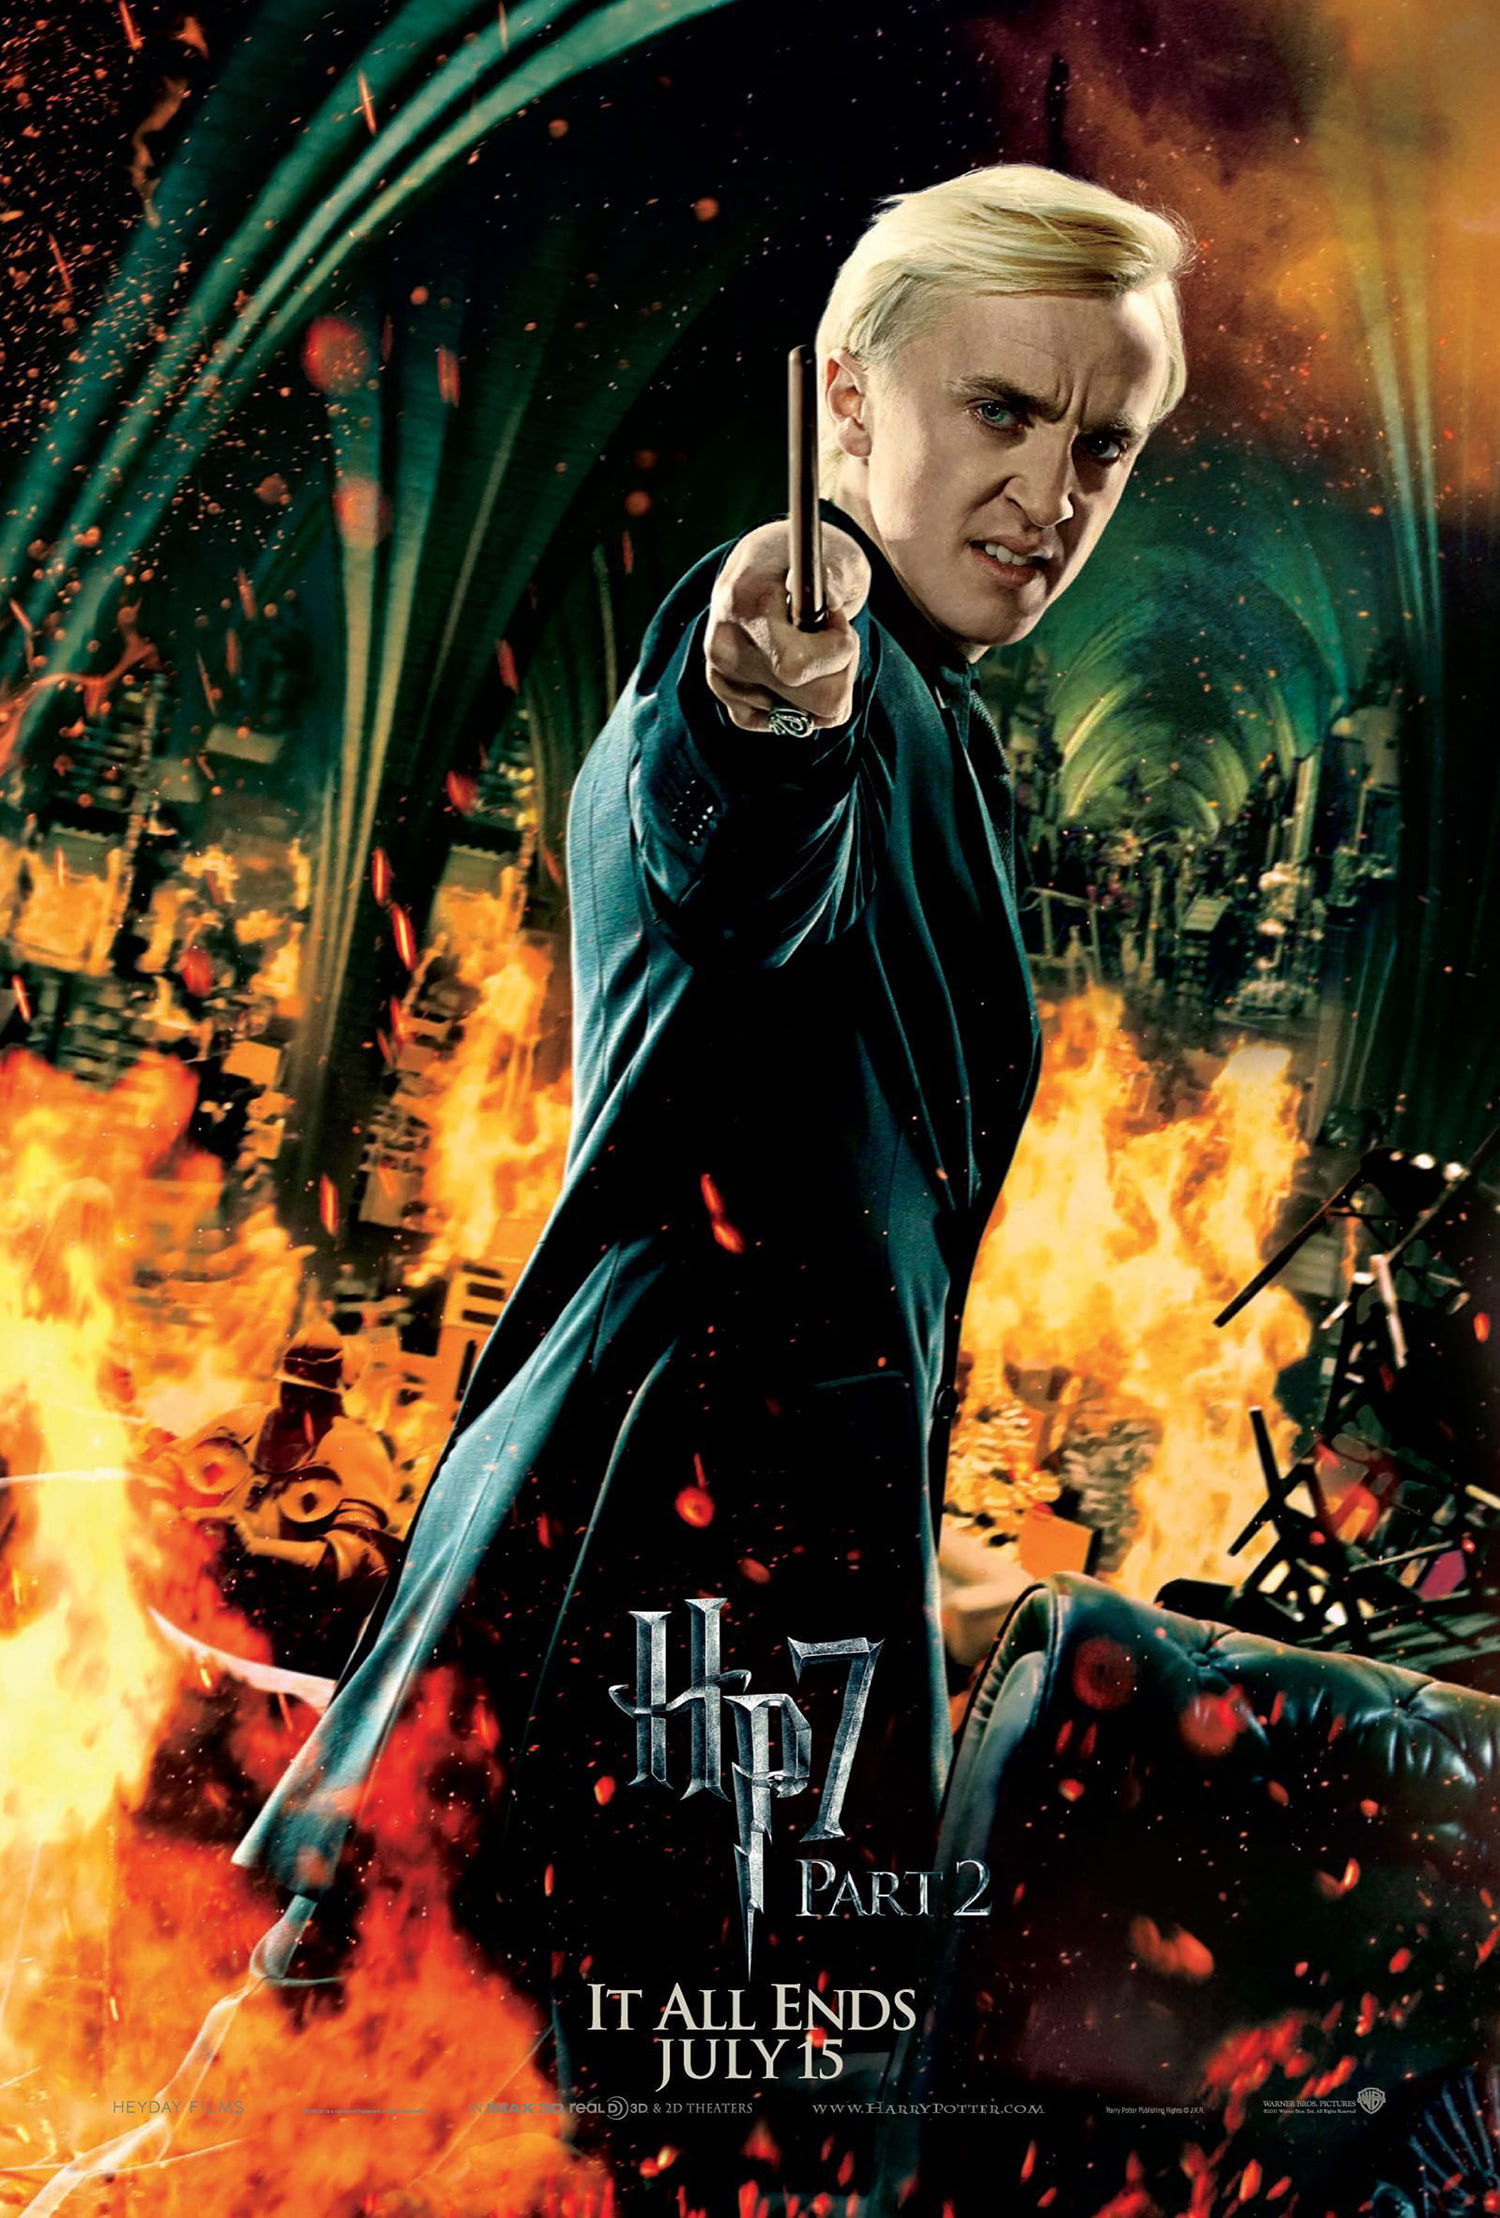 'Deathly Hallows: Part 2' Draco poster